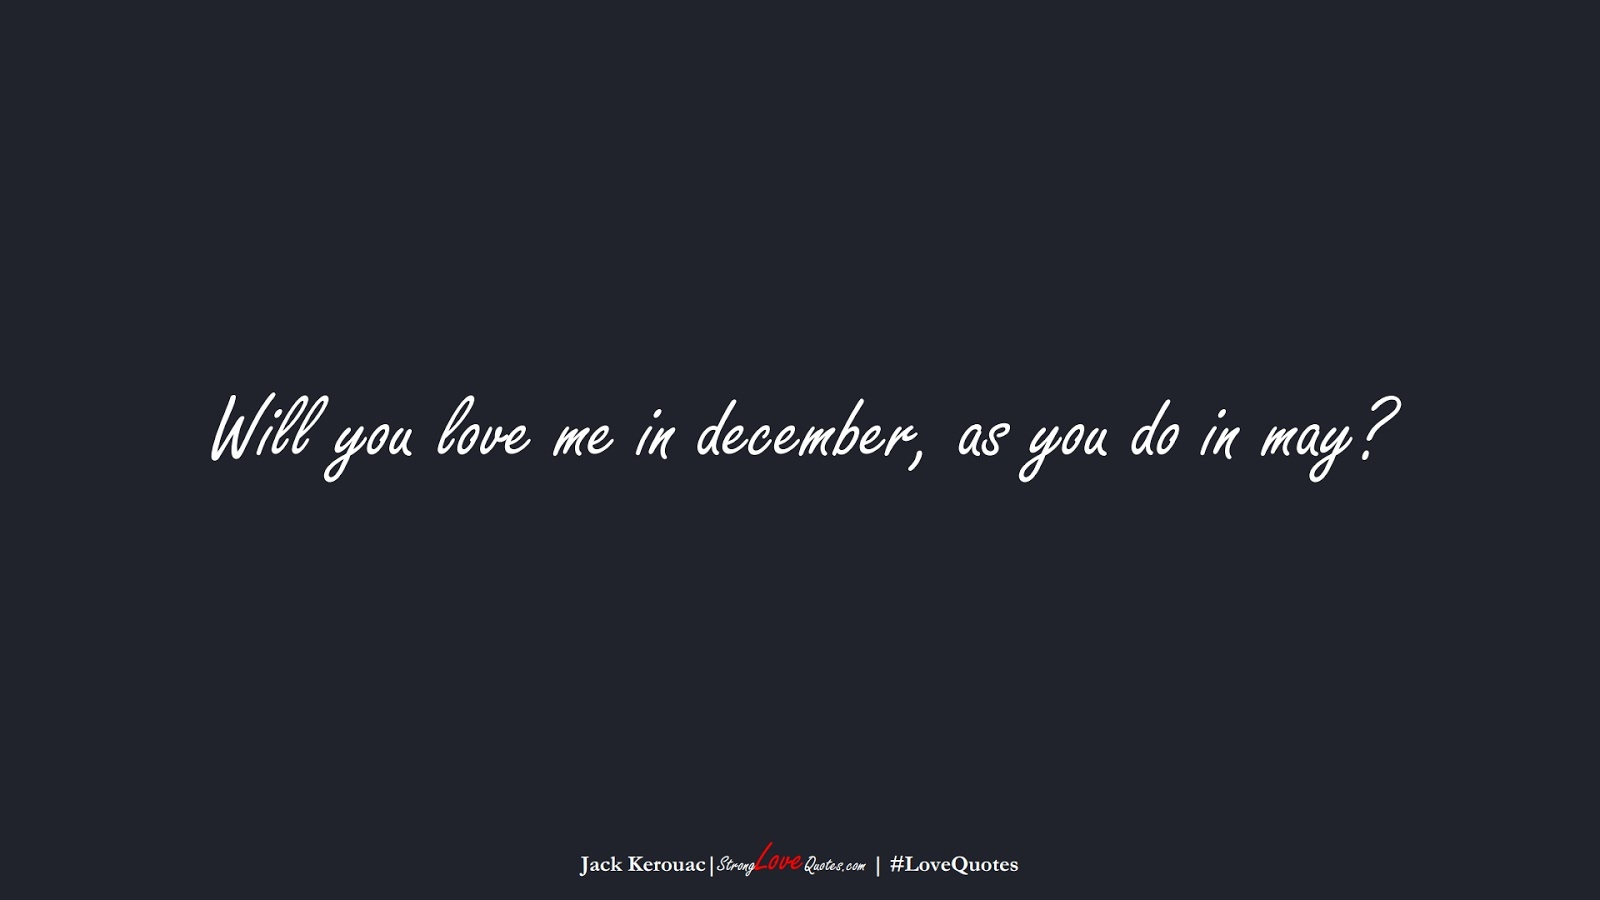 Will you love me in december, as you do in may? (Jack Kerouac);  #LoveQuotes